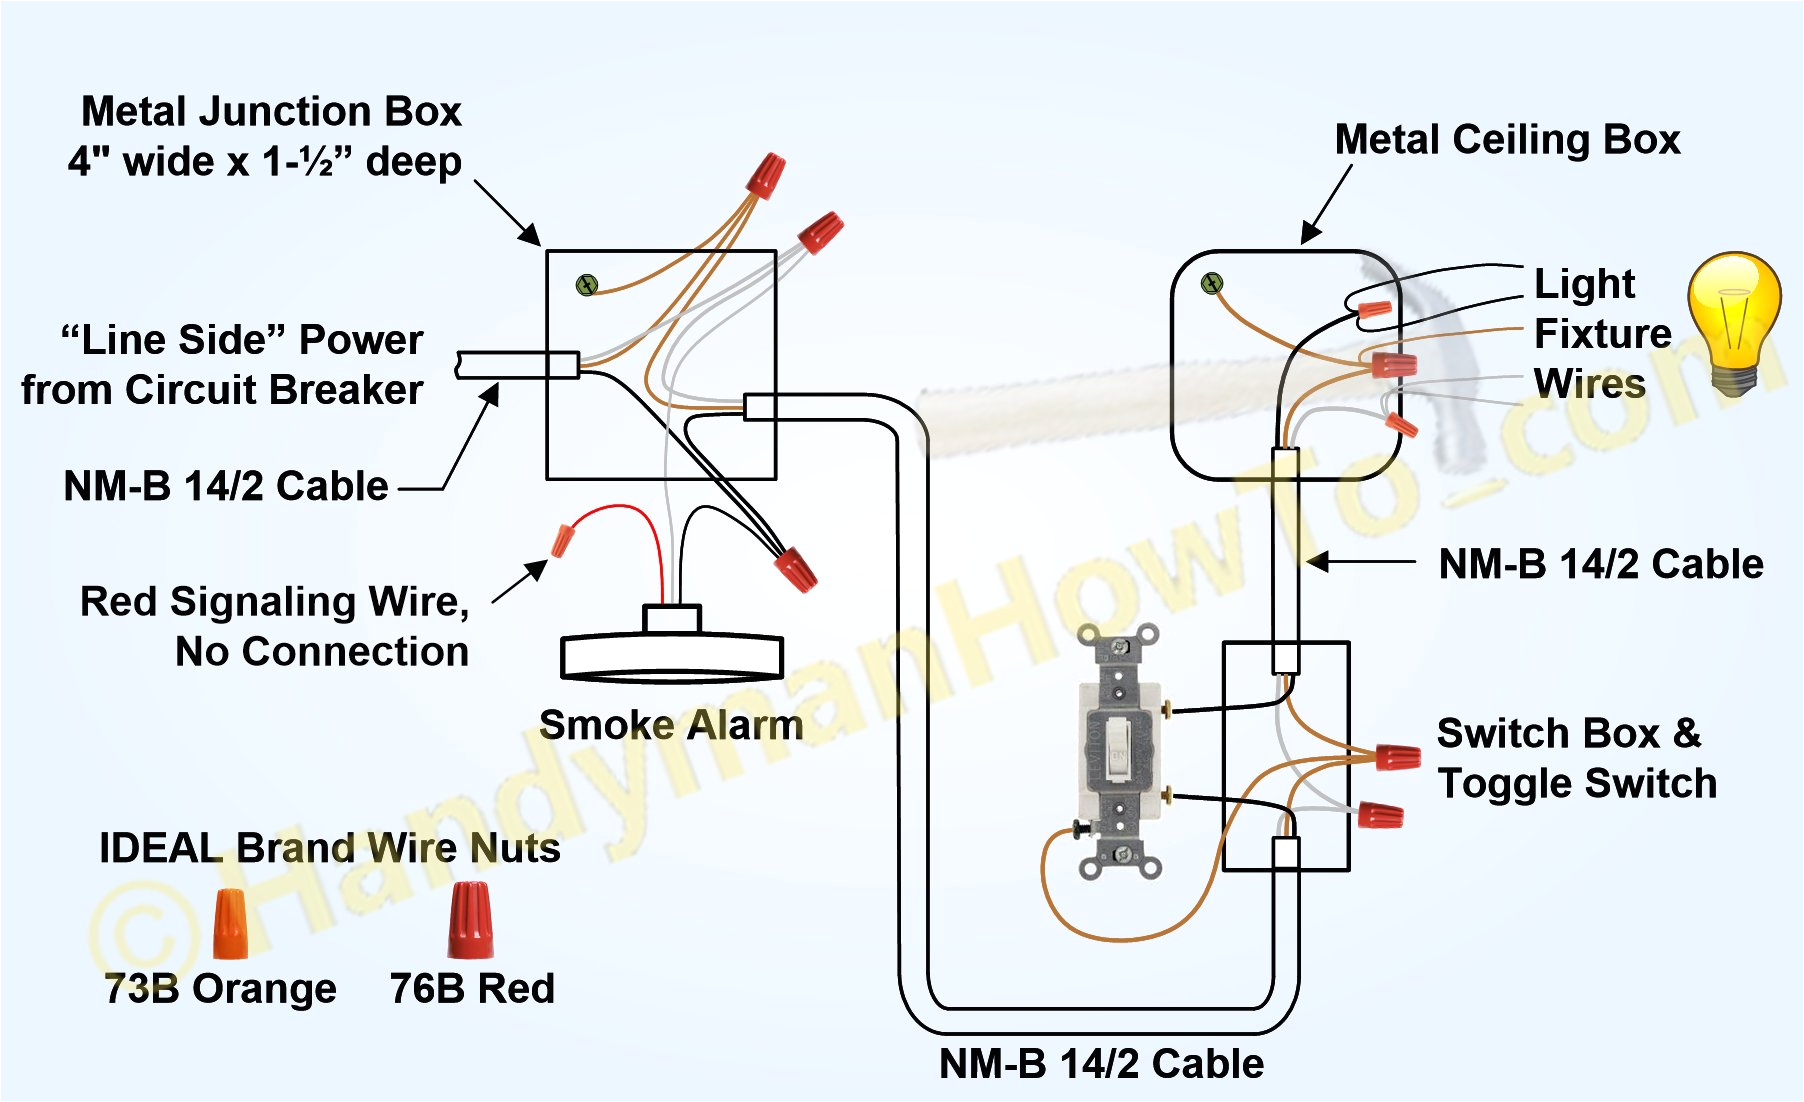 Fire Alarm Wiring Diagram Basic Fire Alarm Wiring Wiring Diagram Files